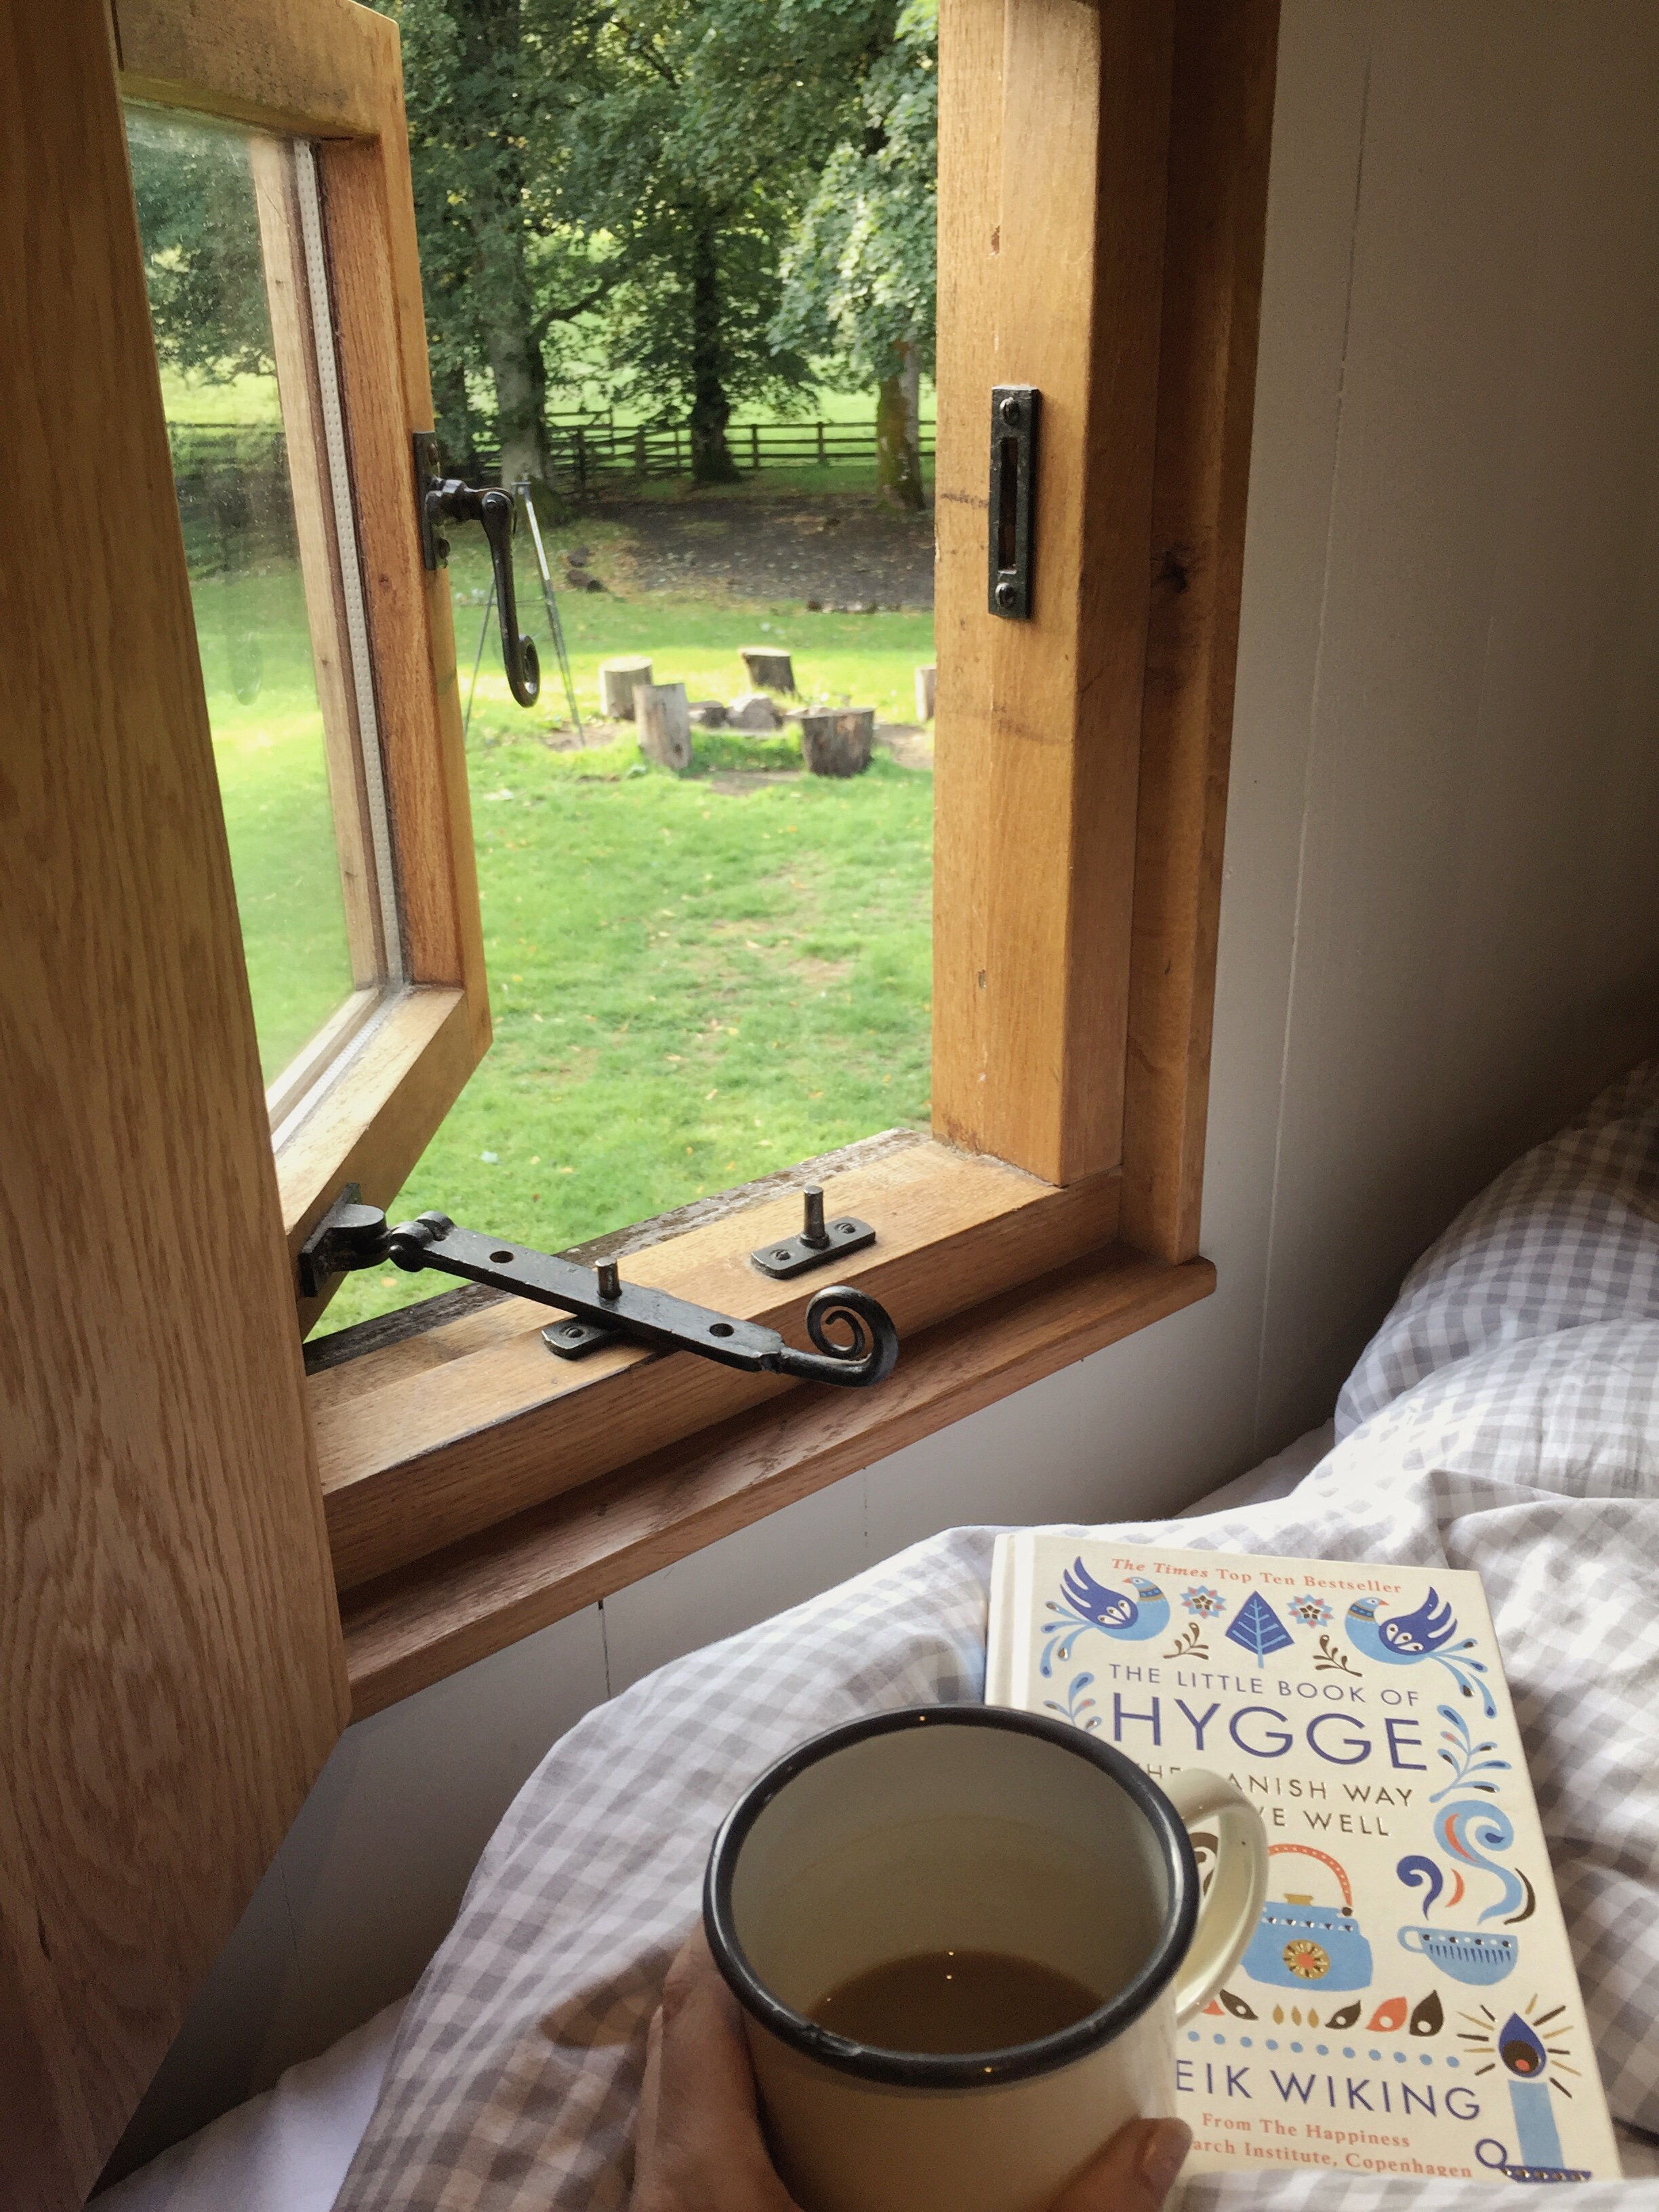 View from a shephers hut window on a crisp autumn morning, accompanied by a cup of tea and the little book of hygge